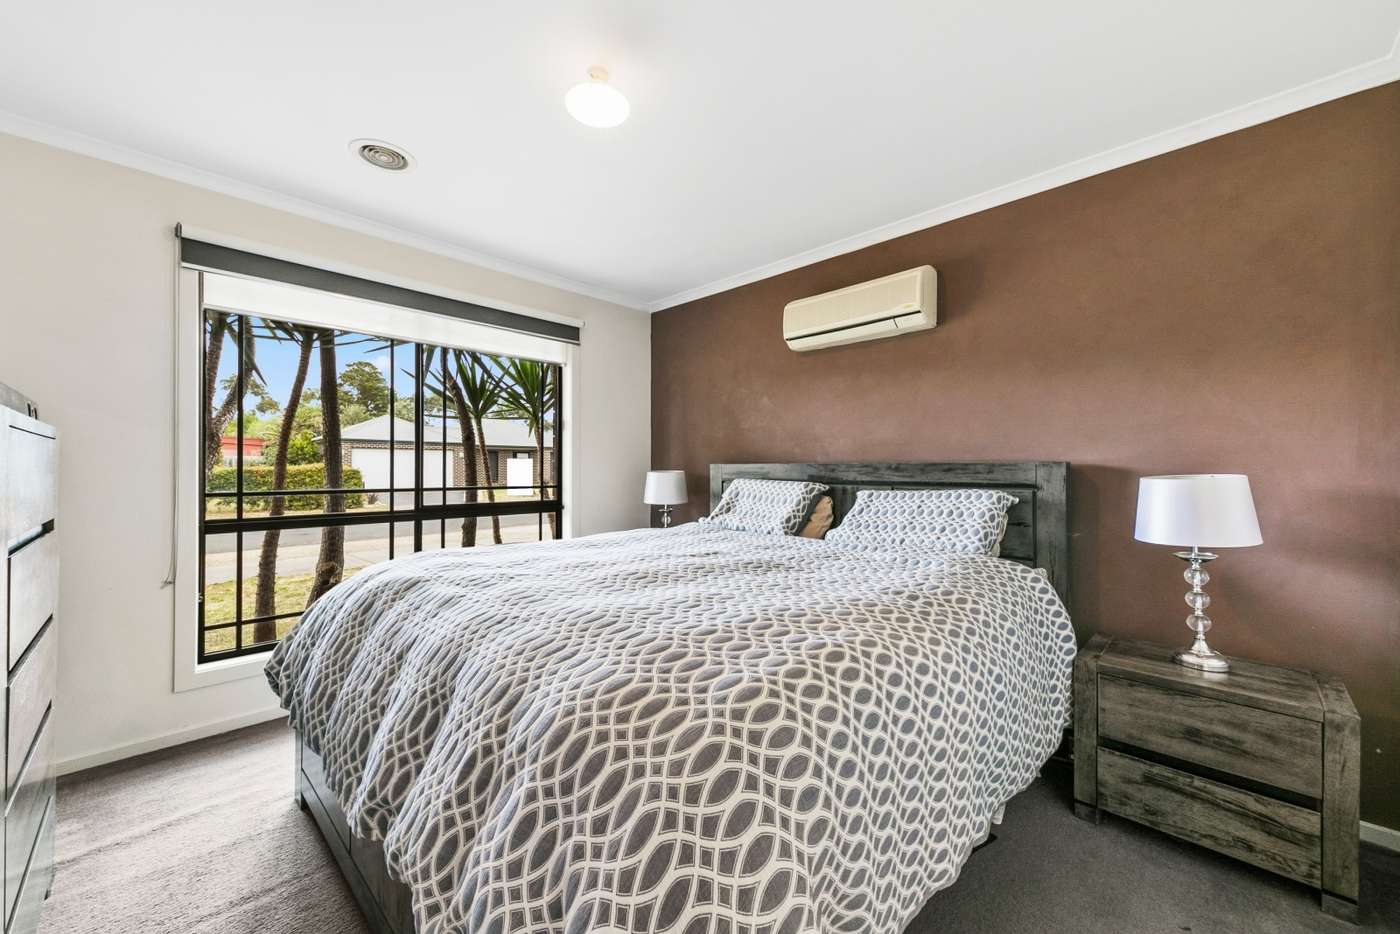 Sixth view of Homely house listing, 6 Kingfisher Court, Hastings VIC 3915